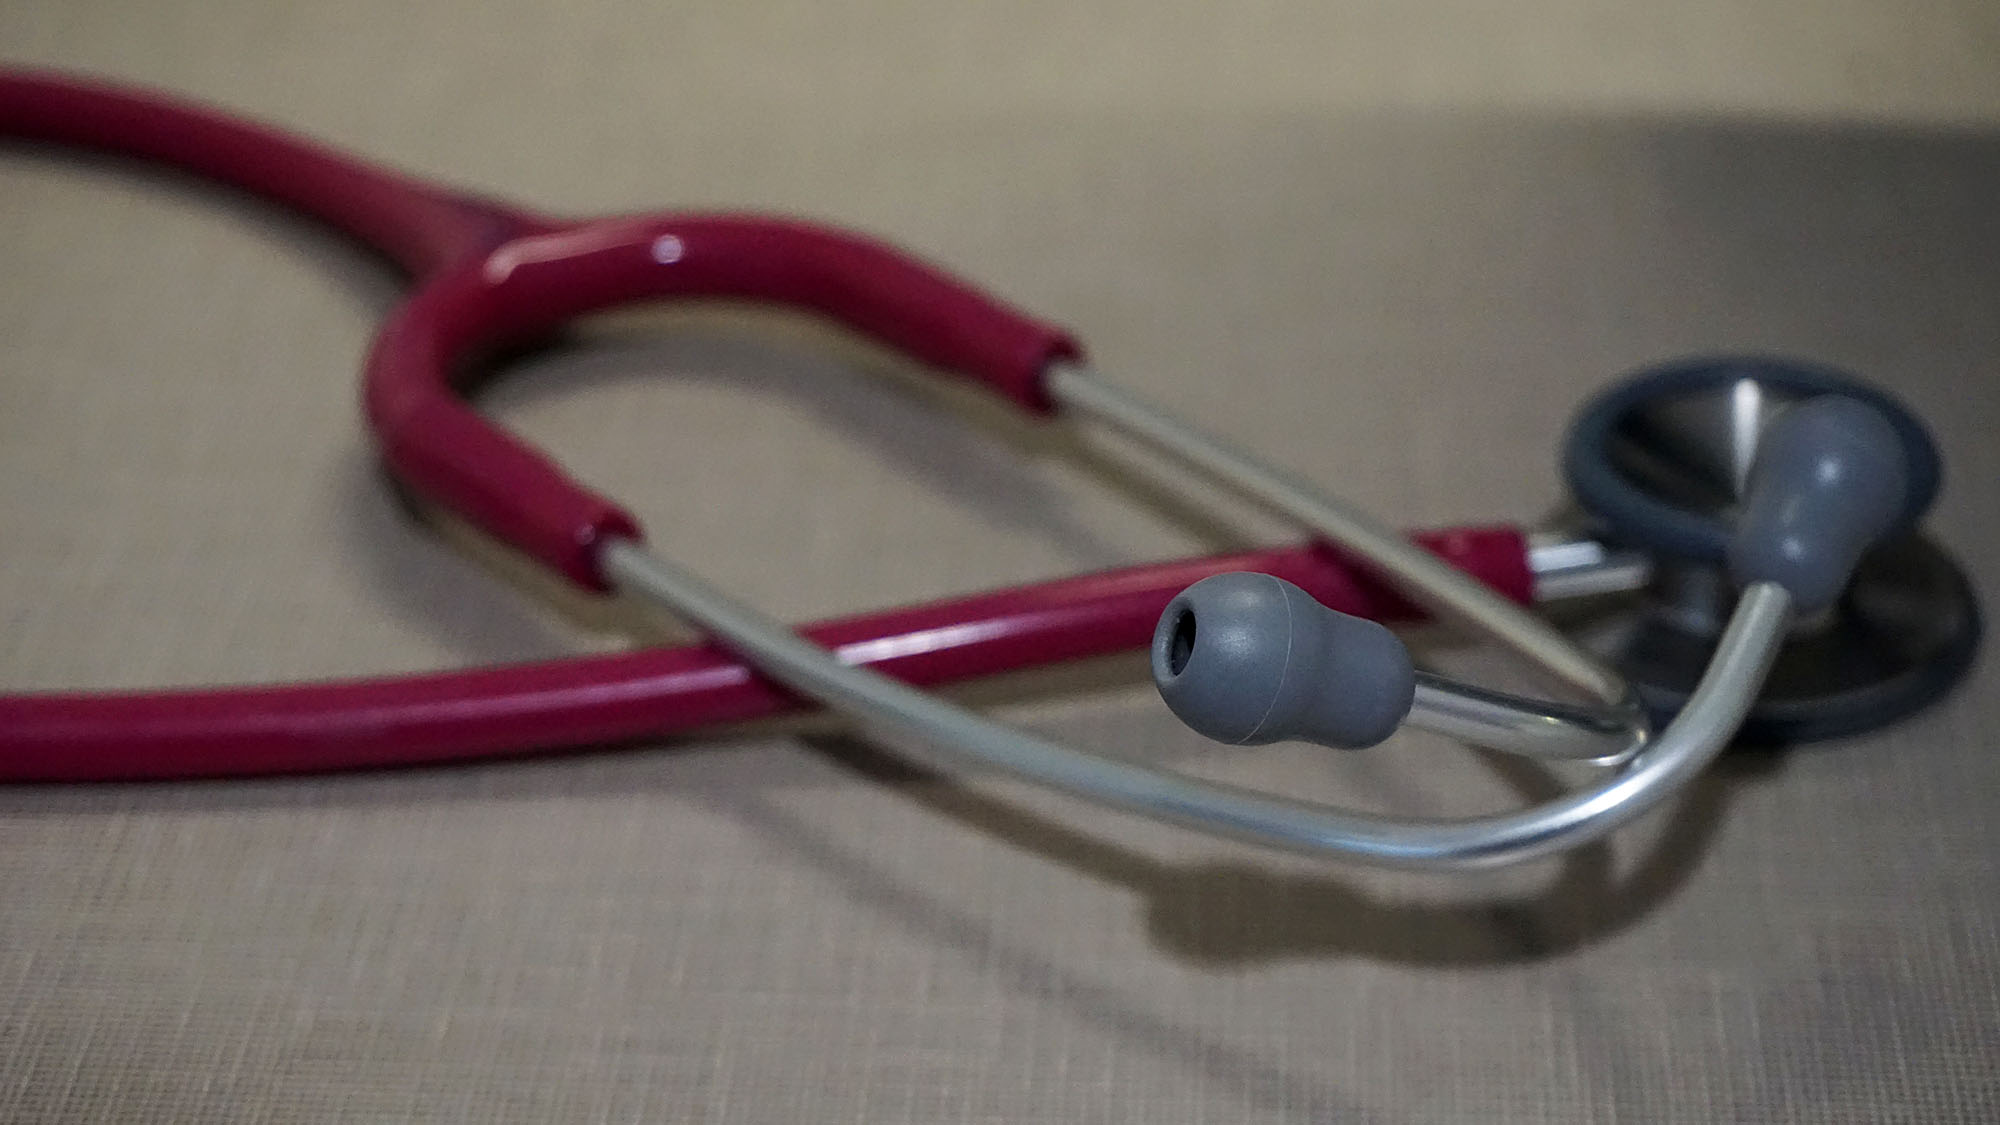 Nova Scotia Health Authority is continuing to develop support systems for doctors administering medically assisted deaths.